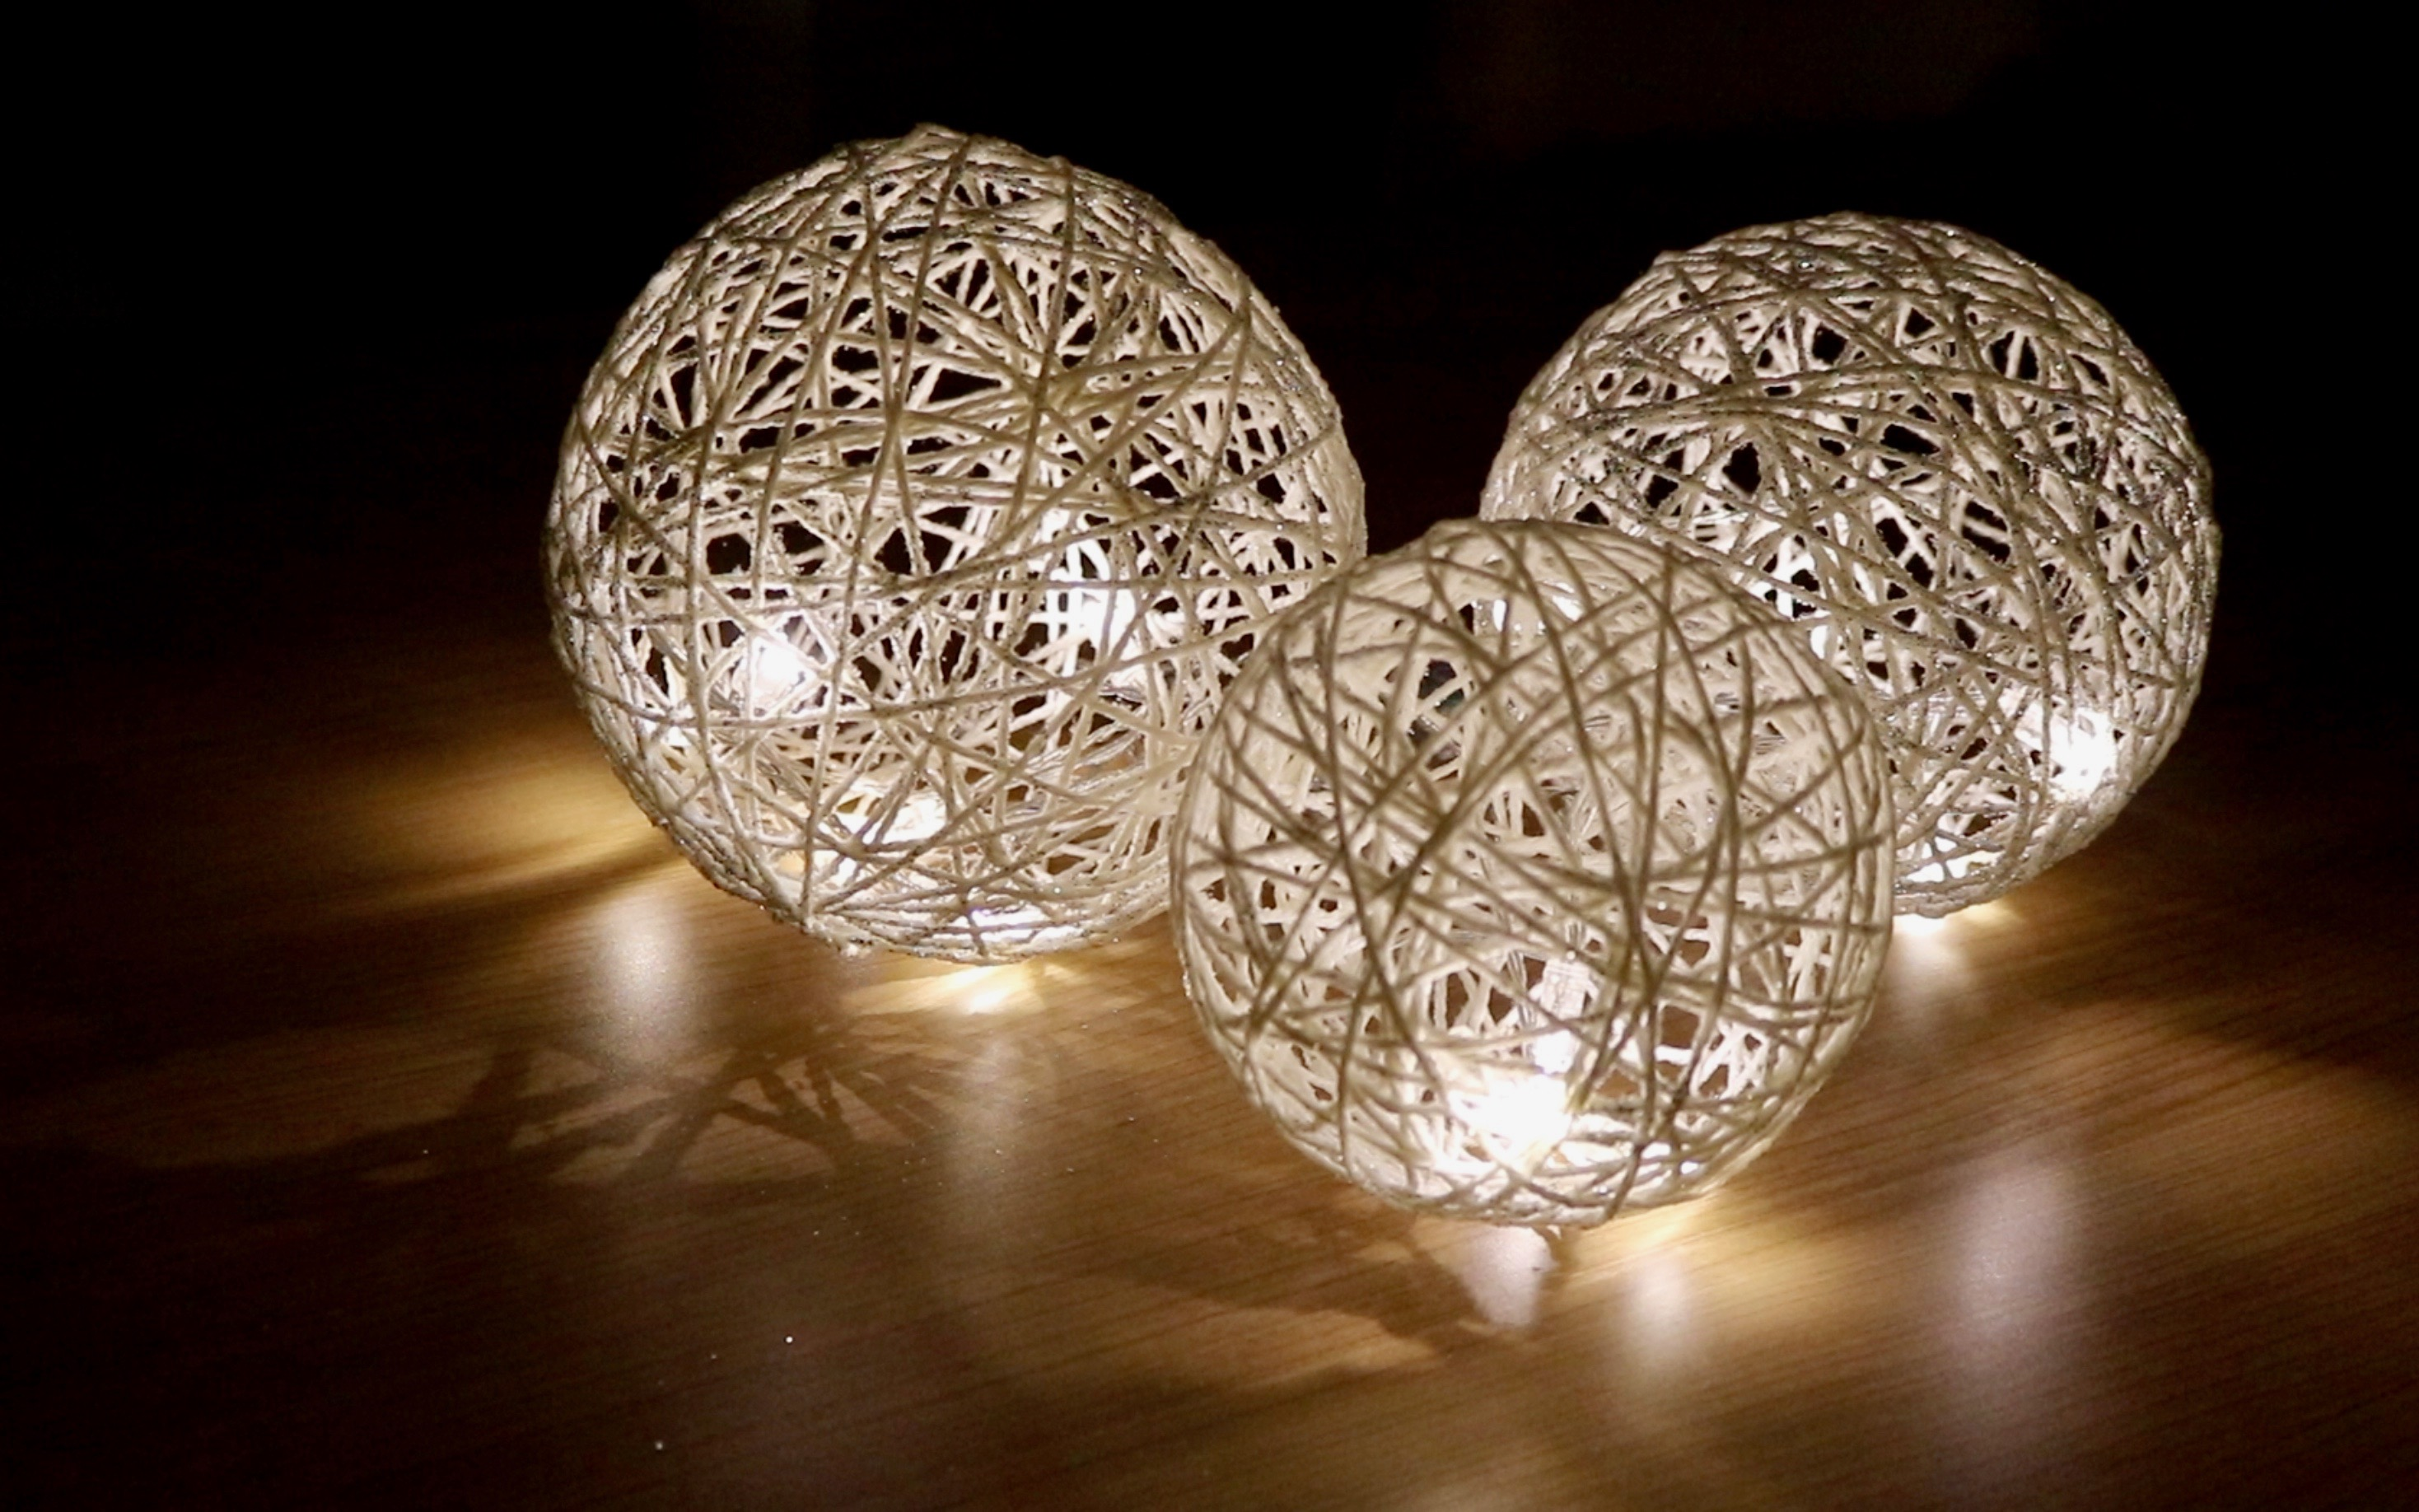 des boules lumineuses en ficelle pour votre d co noel tutoriel video. Black Bedroom Furniture Sets. Home Design Ideas